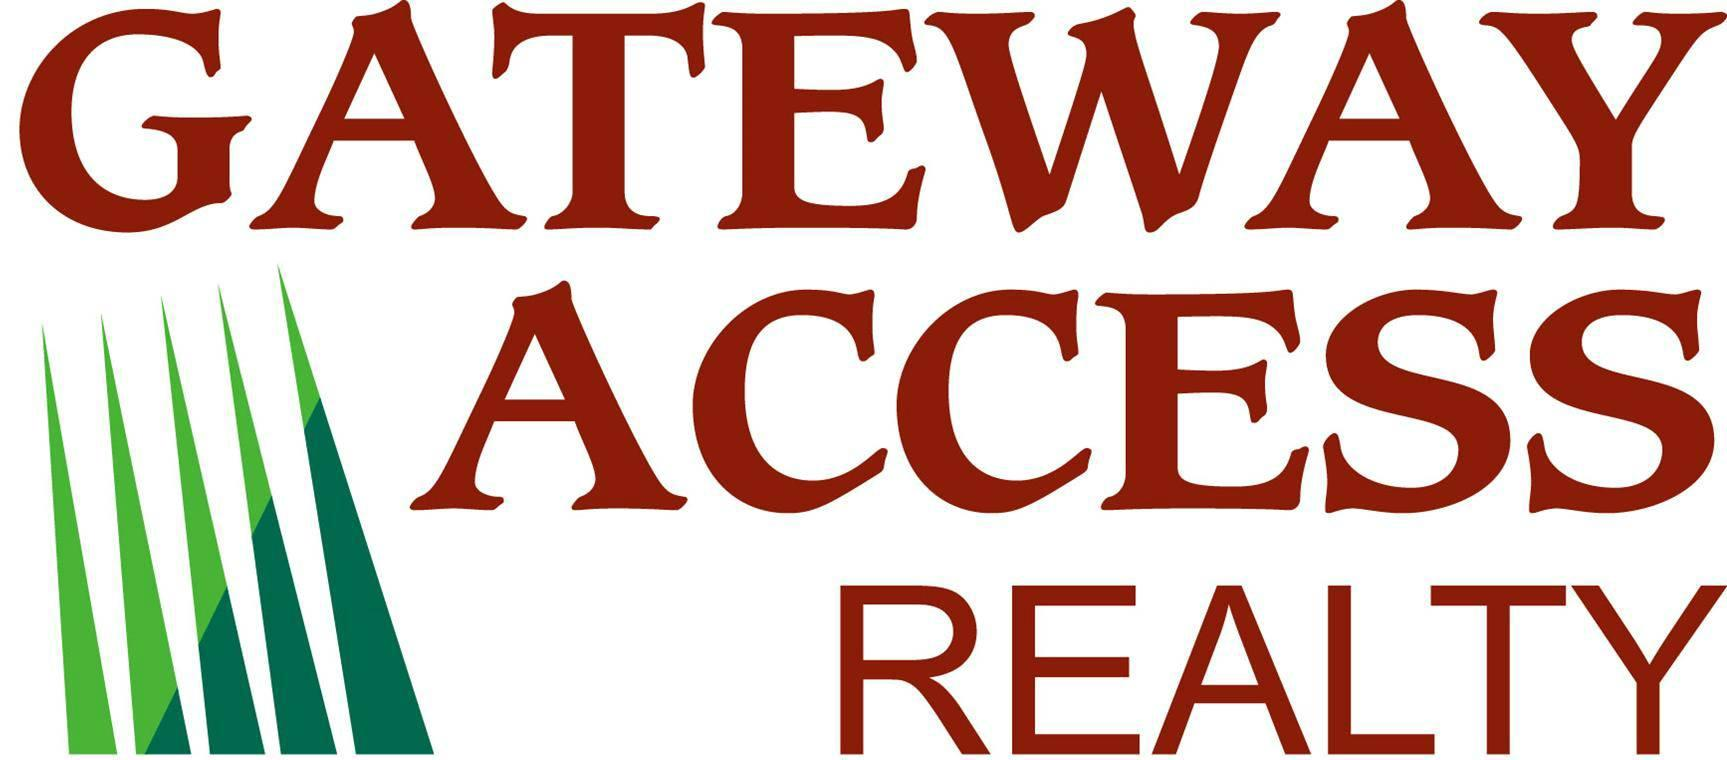 Gateway Access Realty